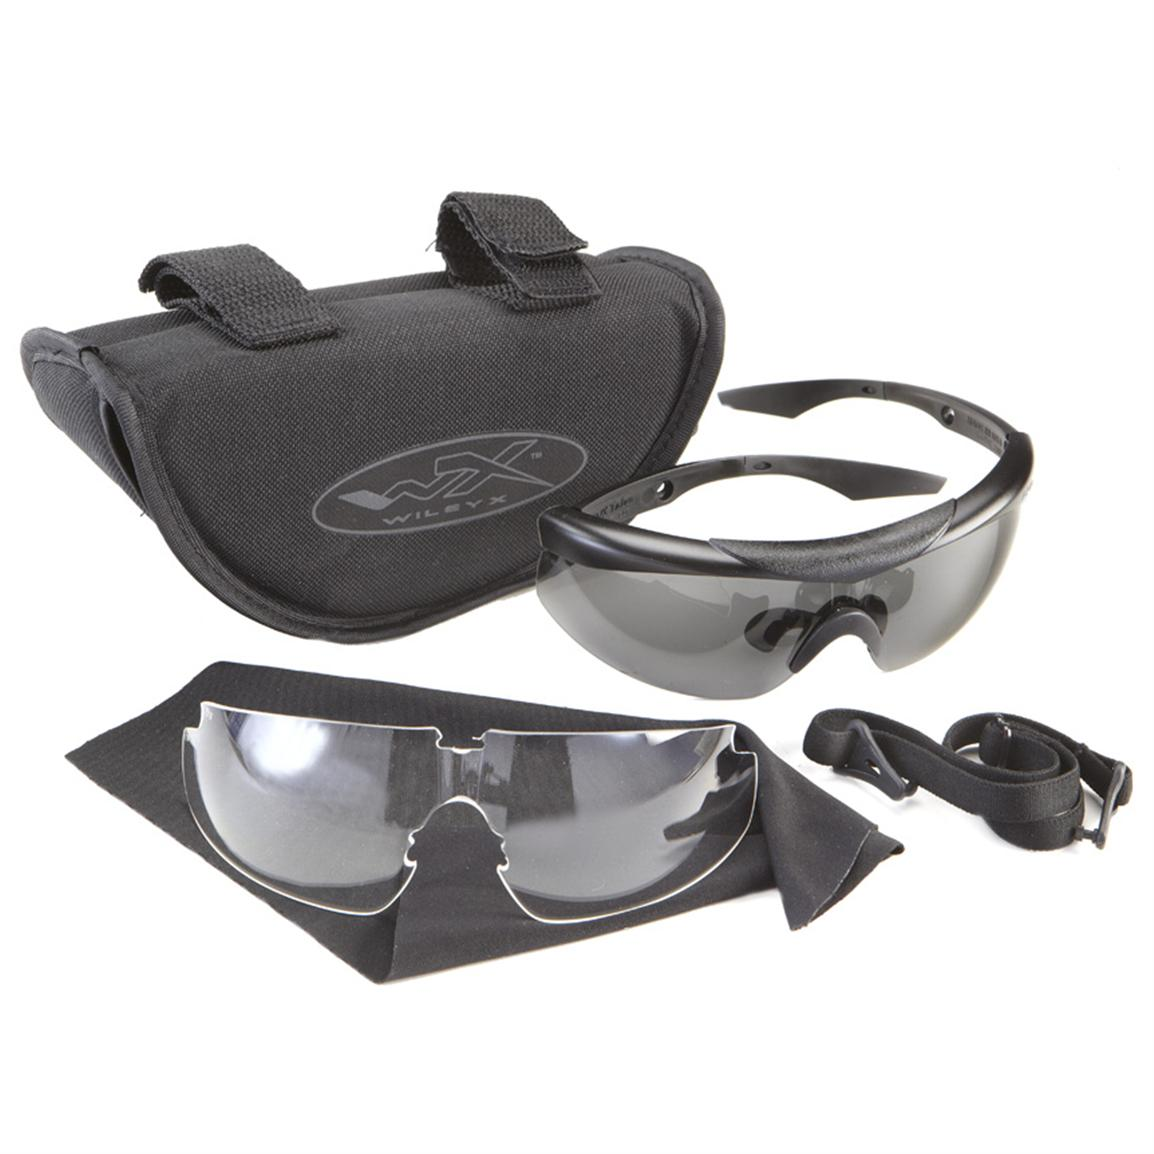 Wiley X® Talon 2 Safety / Shooting Sunglasses